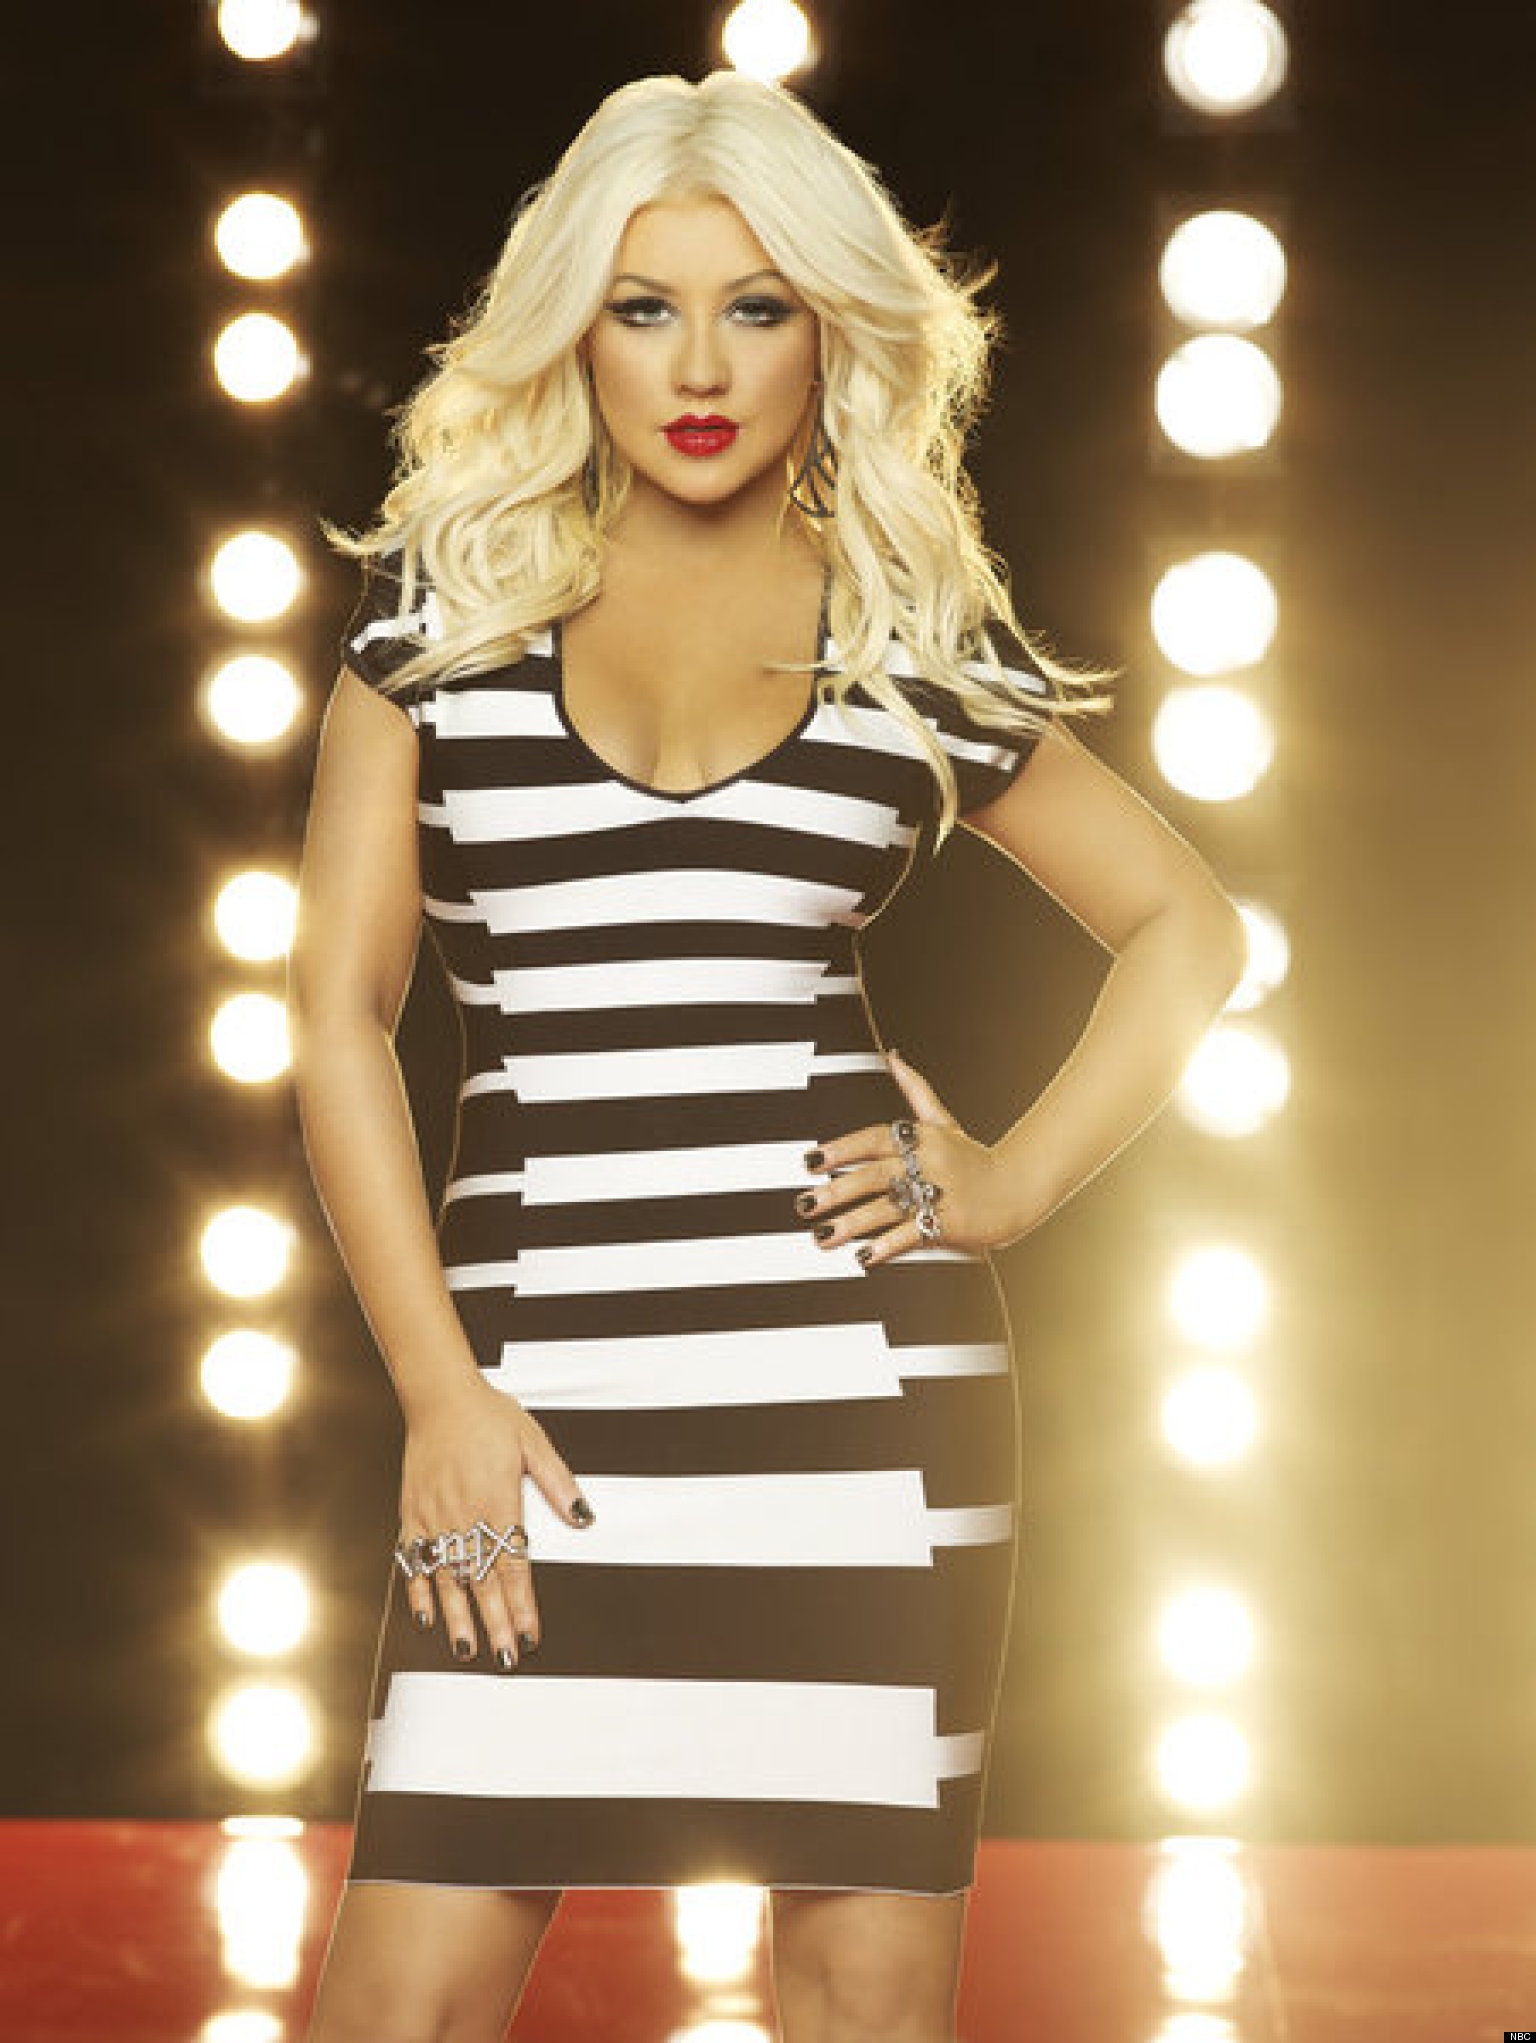 Christina Aguilera I Don T Watch The Voice Simon Cowell Is A Dick